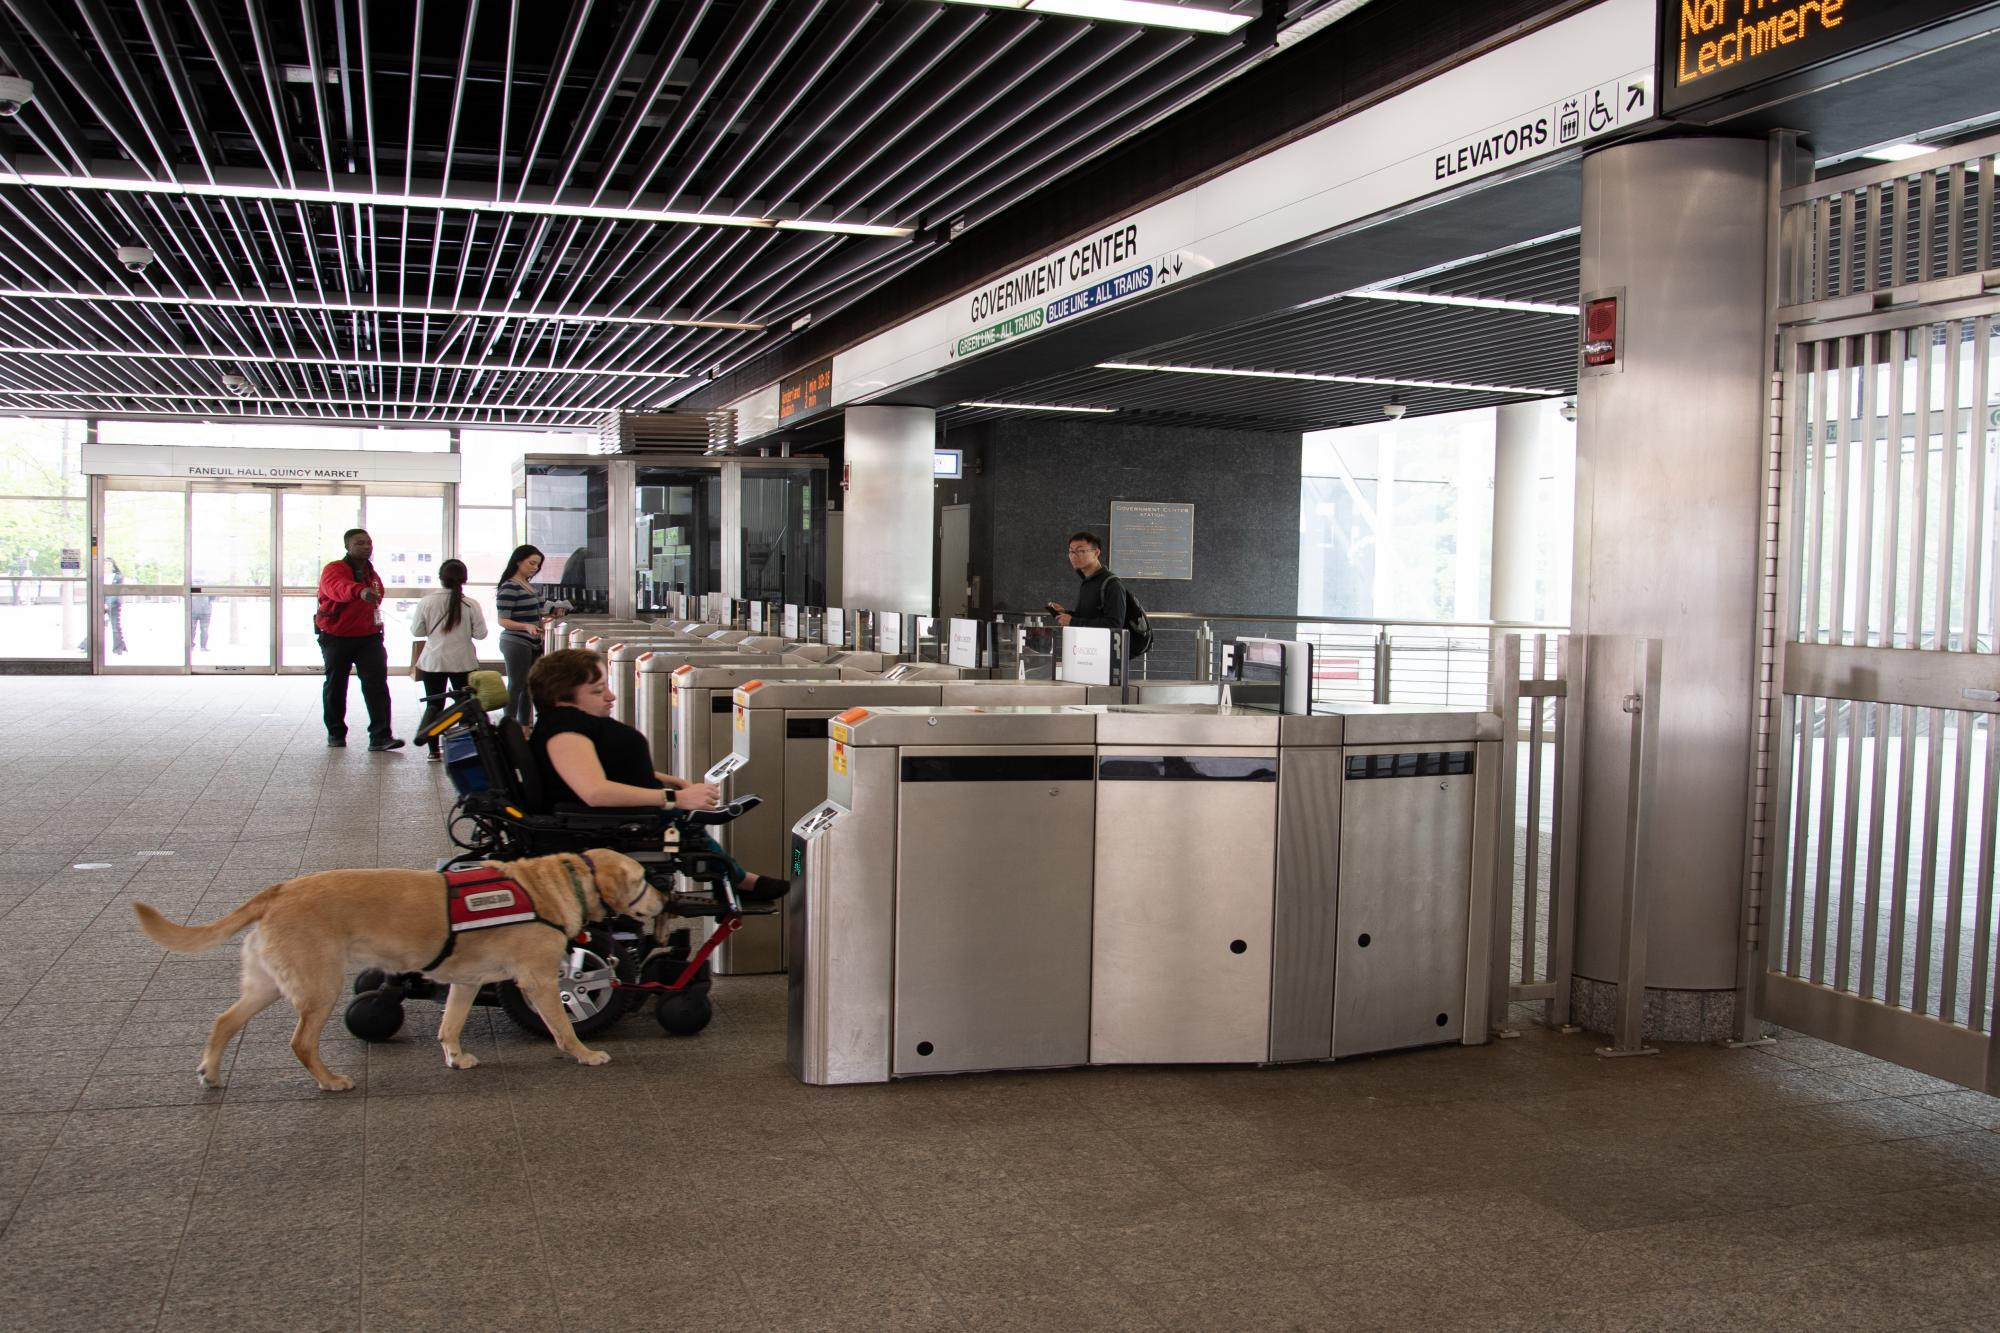 customer entering government center accessible fare gate